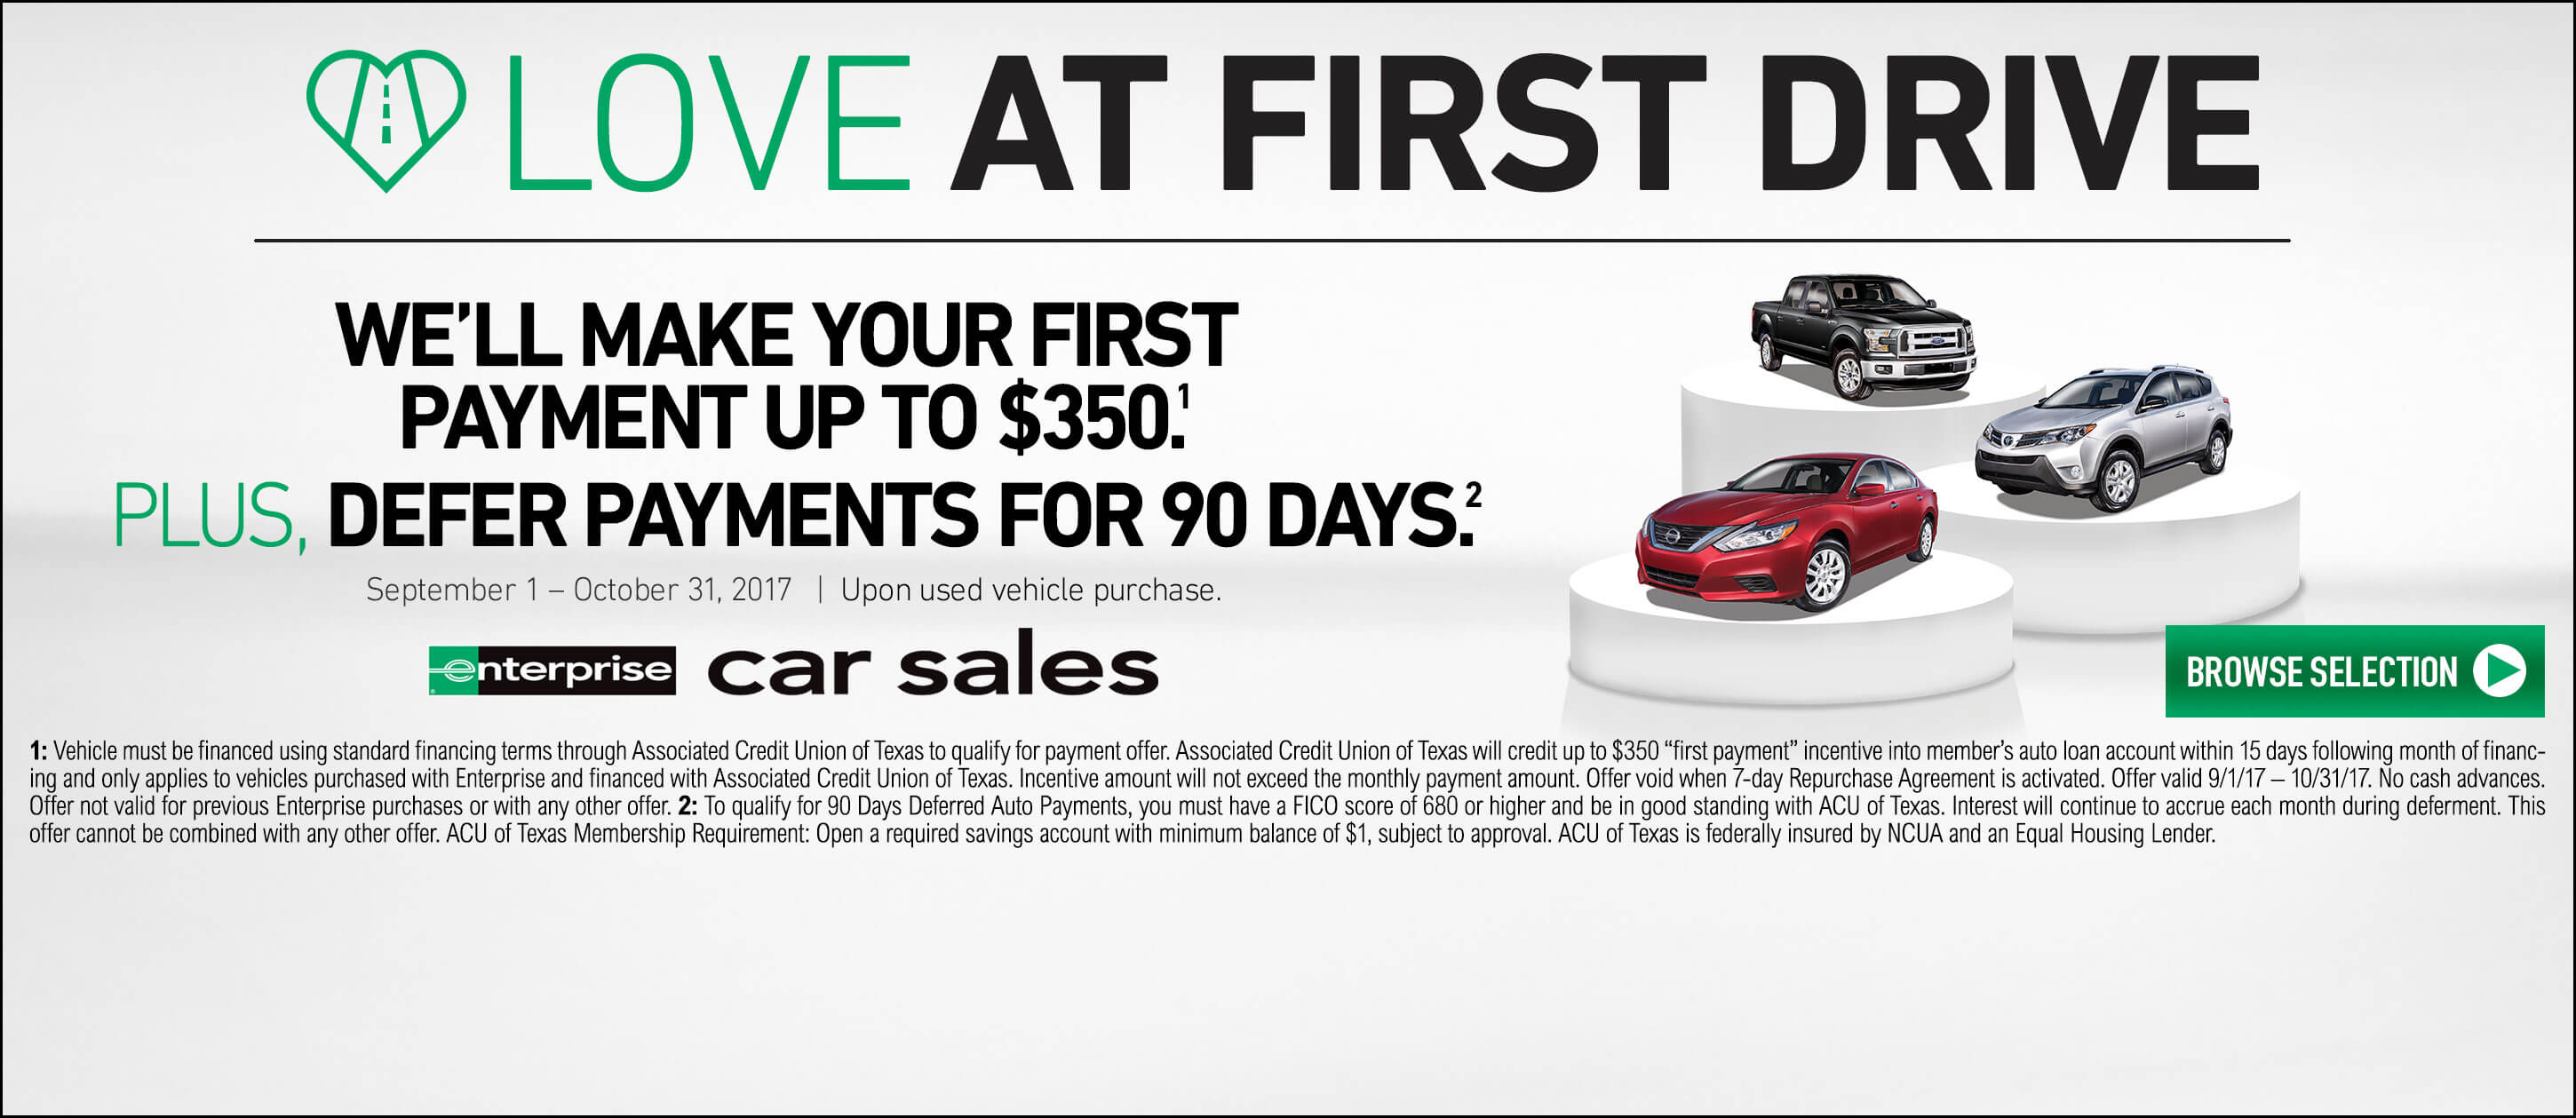 Associated credit union of used honda accord for sale certified used cars enterprise car